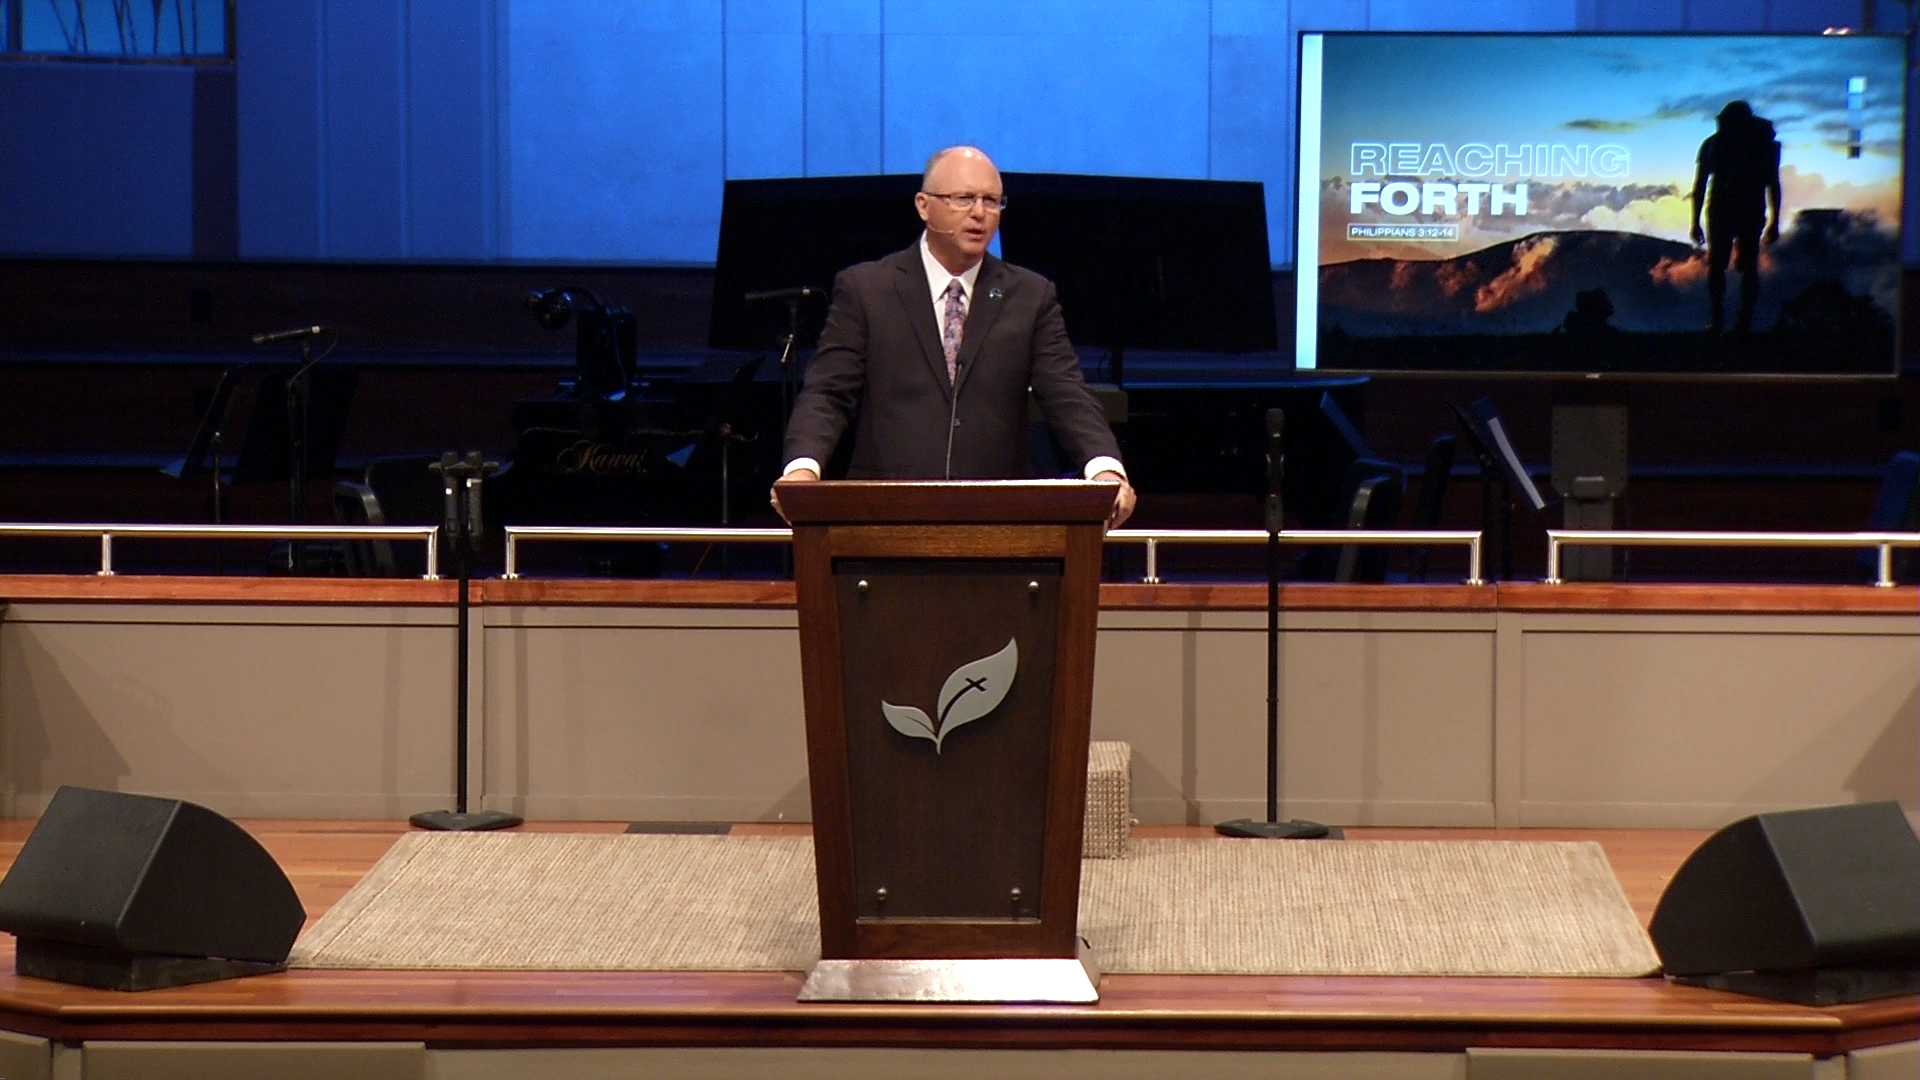 Pastor Paul Chappell: Reaching Forth Part 1